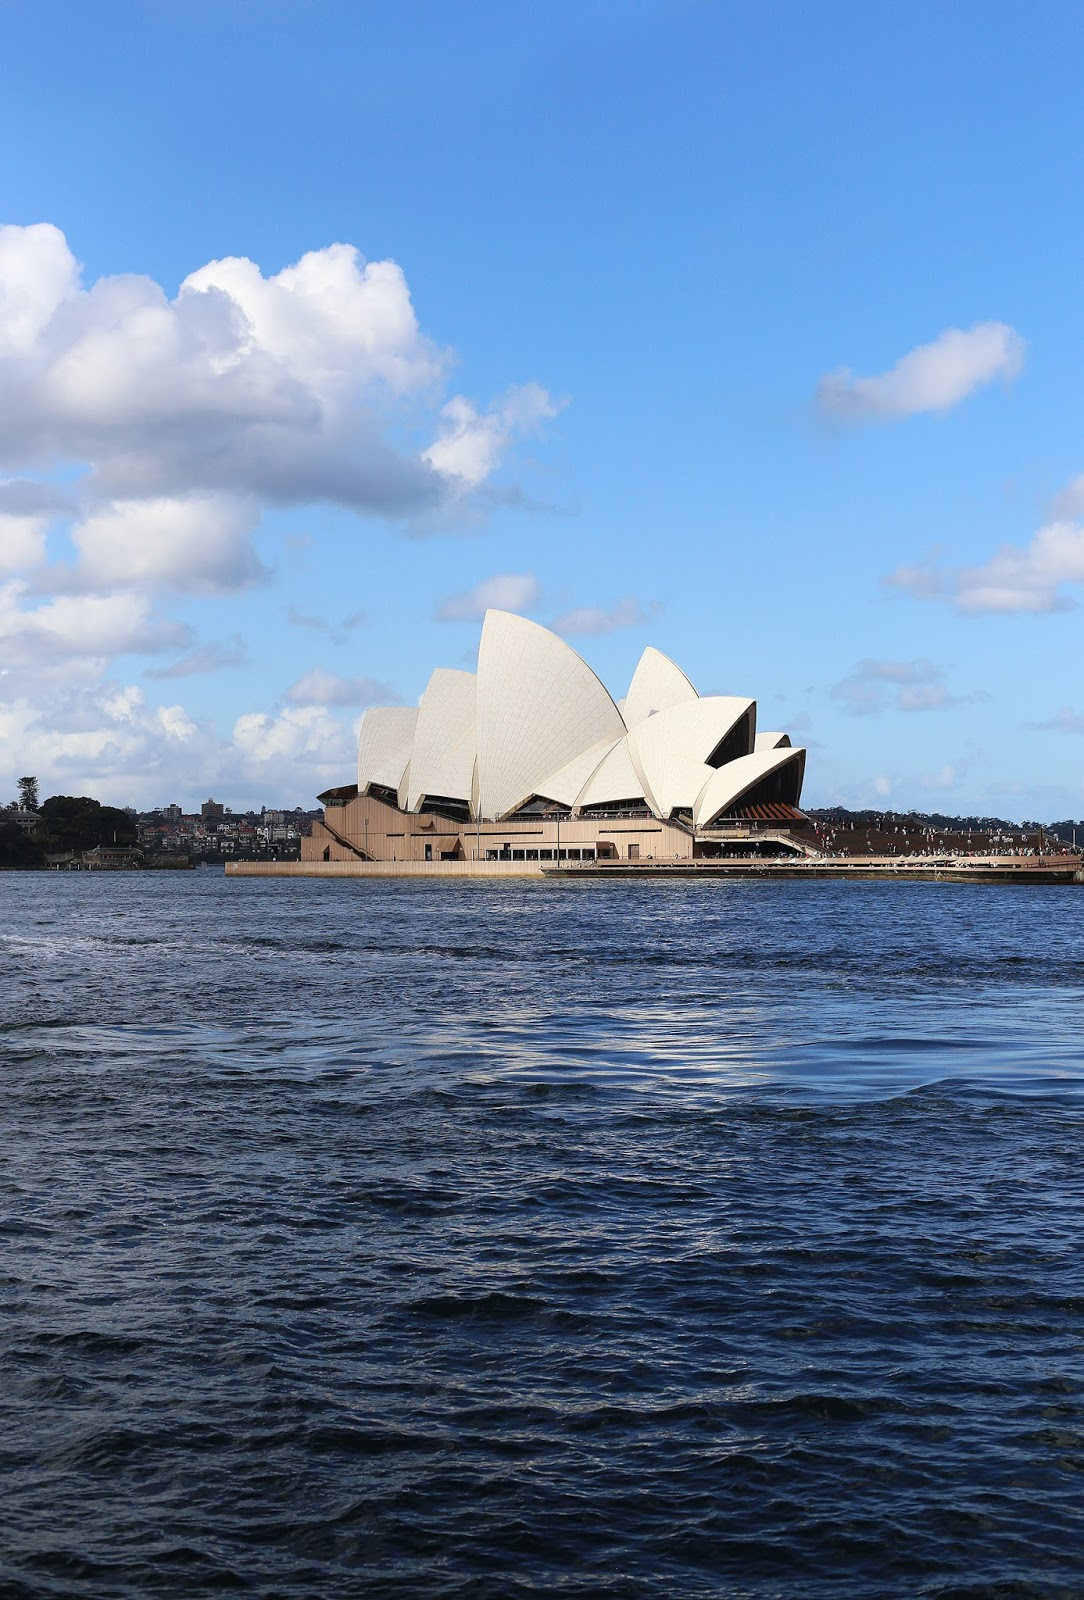 Sydney, Australia: 10 Things To Do In Sydney